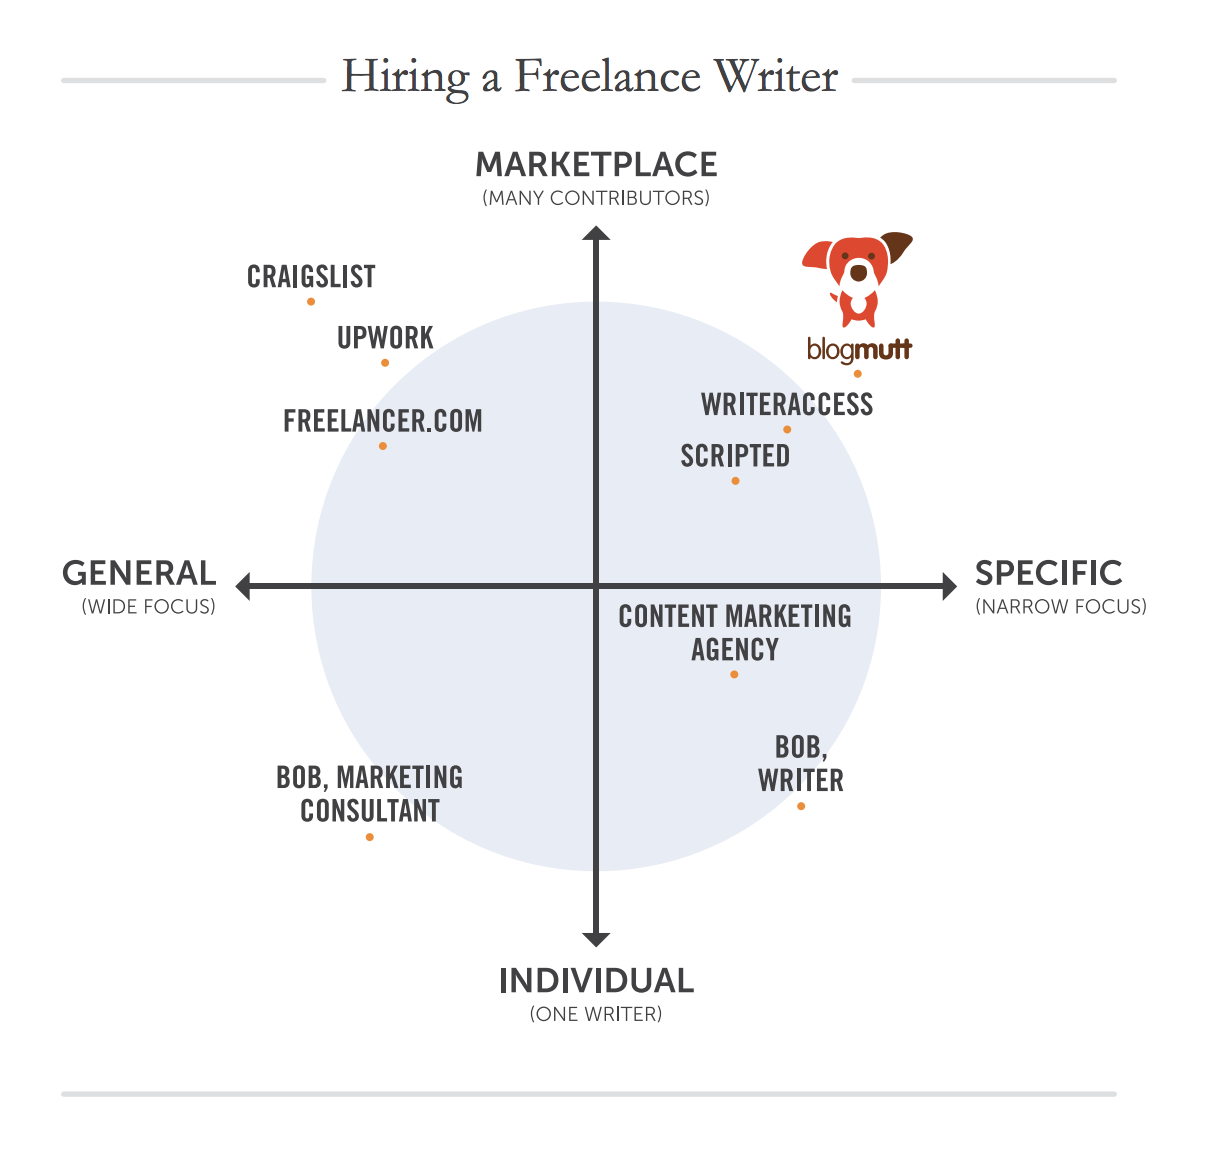 Hiring a freelance writer infographic